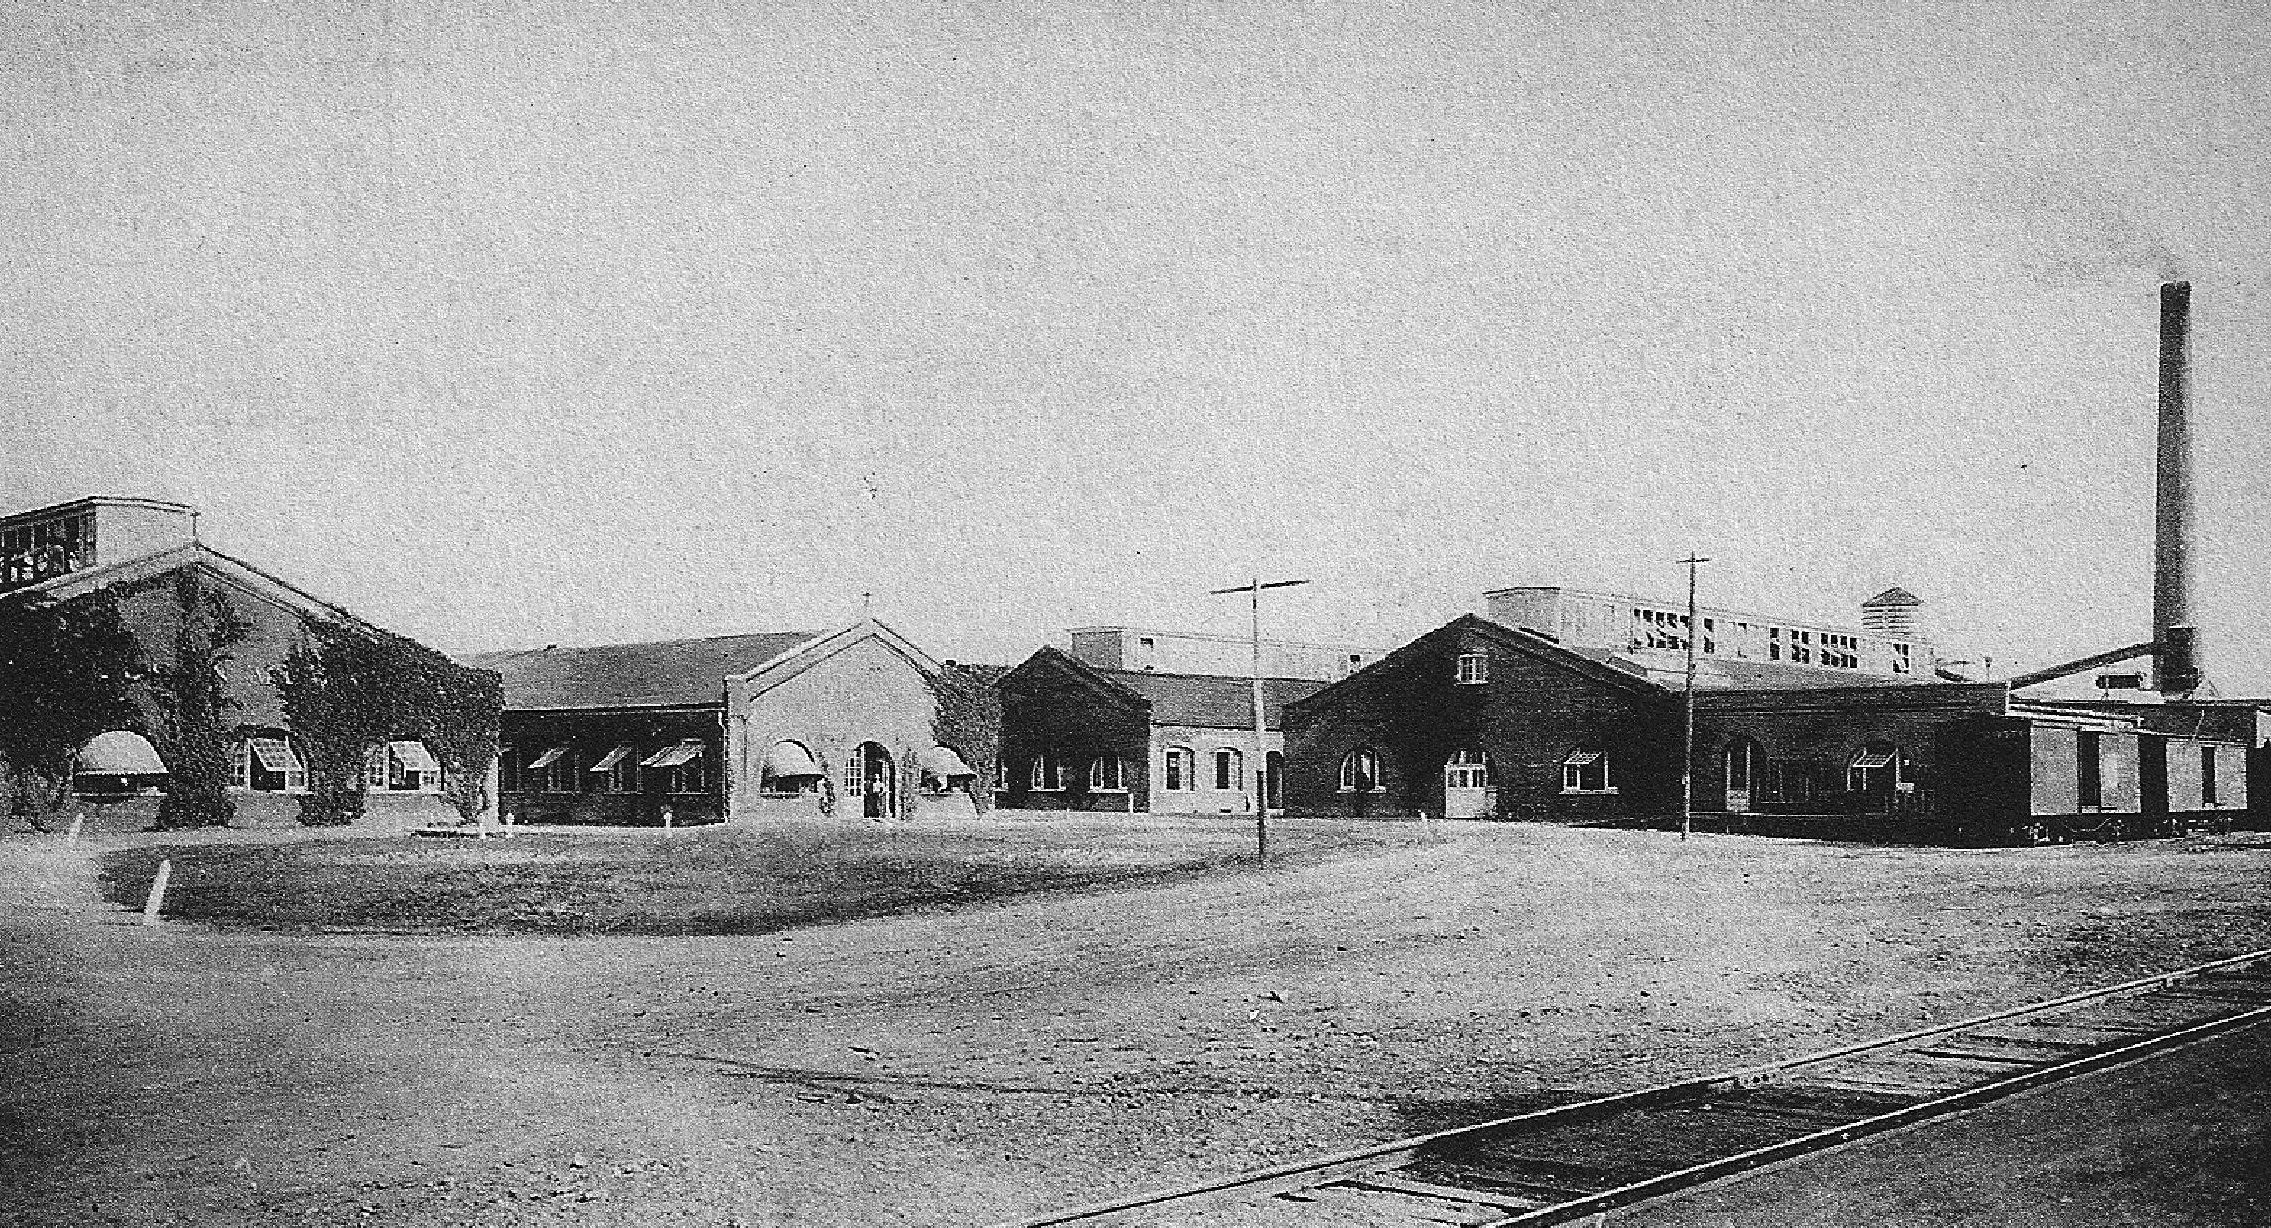 N.O. Nelson Manufacturing Company